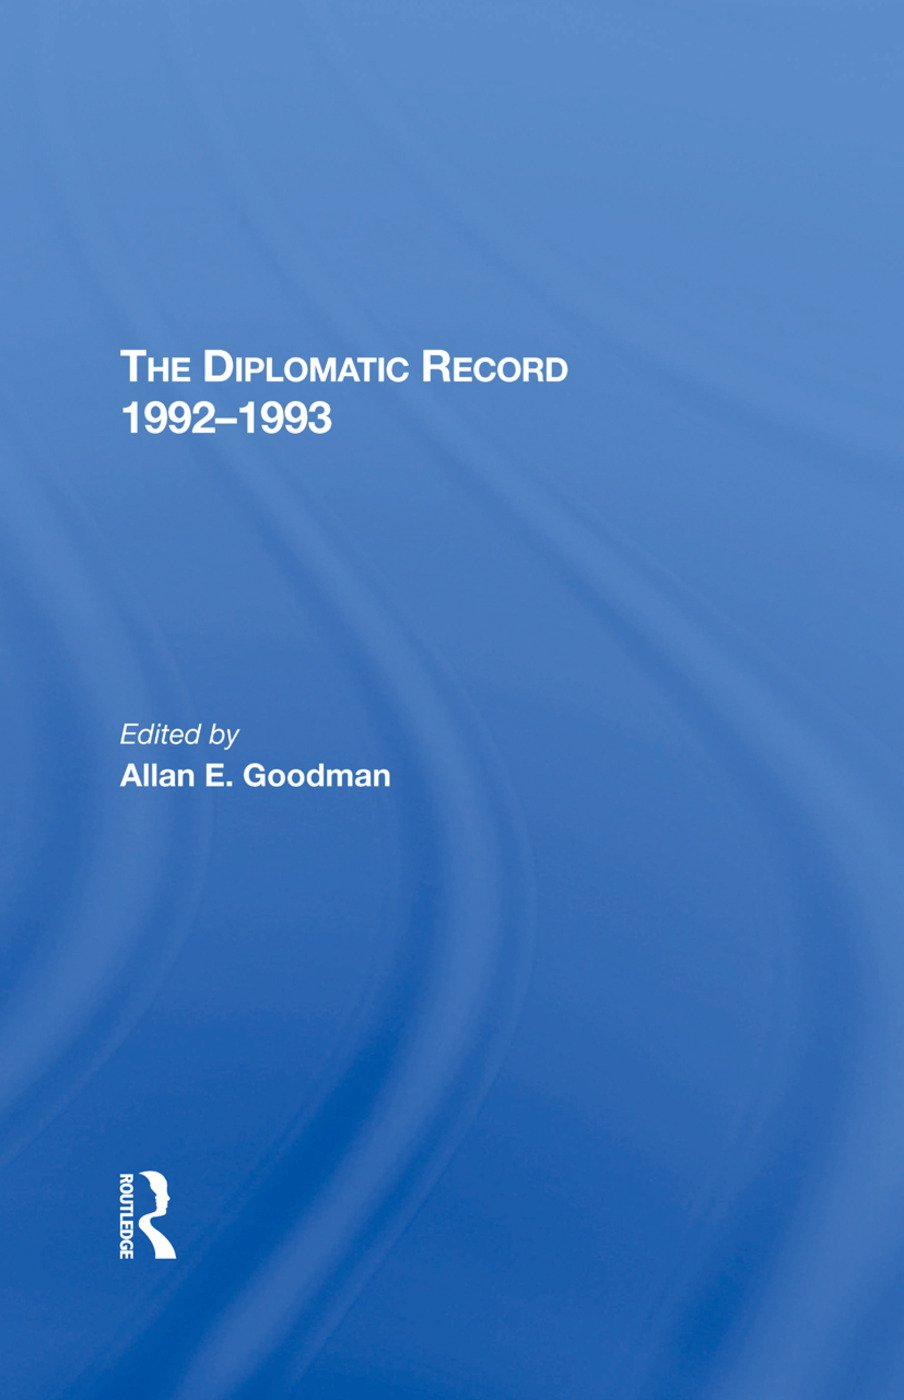 The Diplomatic Record 1992-1993